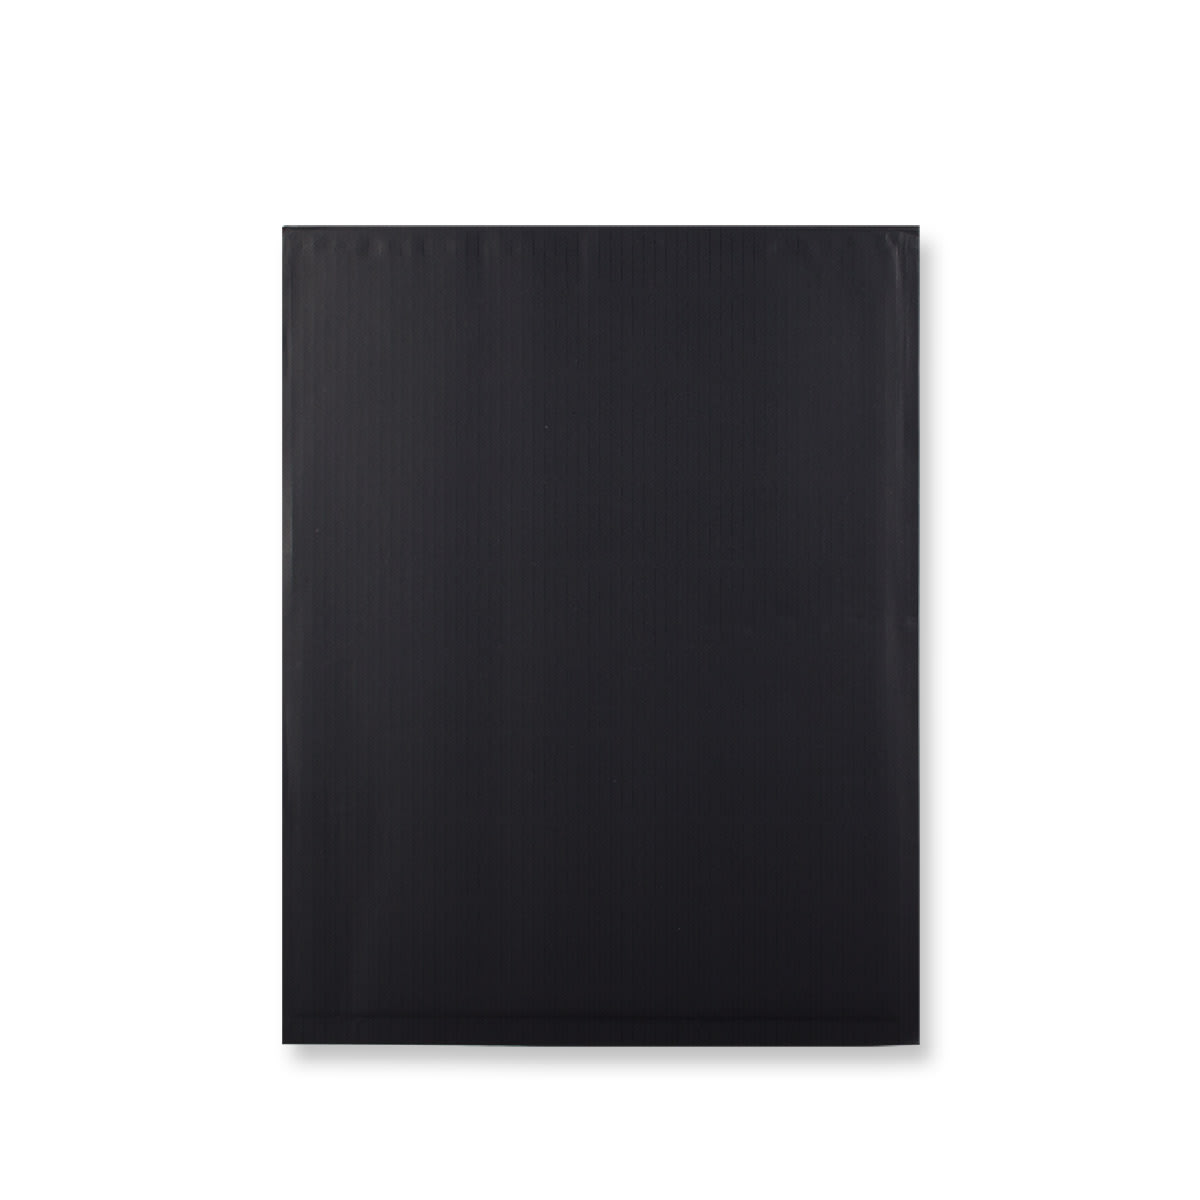 470 x 350mm BLACK PAPER PADDED ENVELOPES